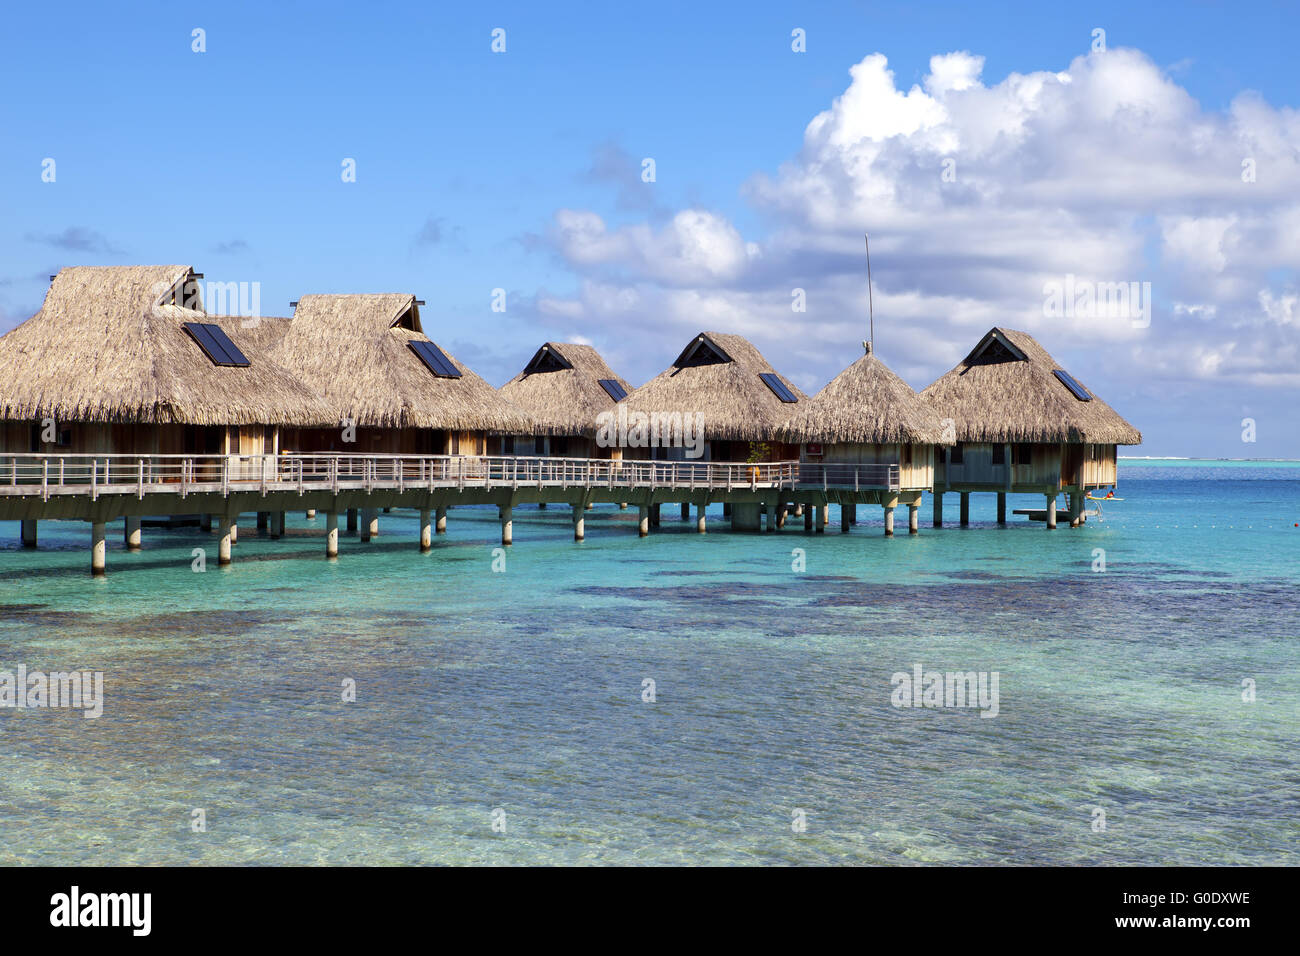 Tropical Islands   Huts, Wooden Houses Over Water